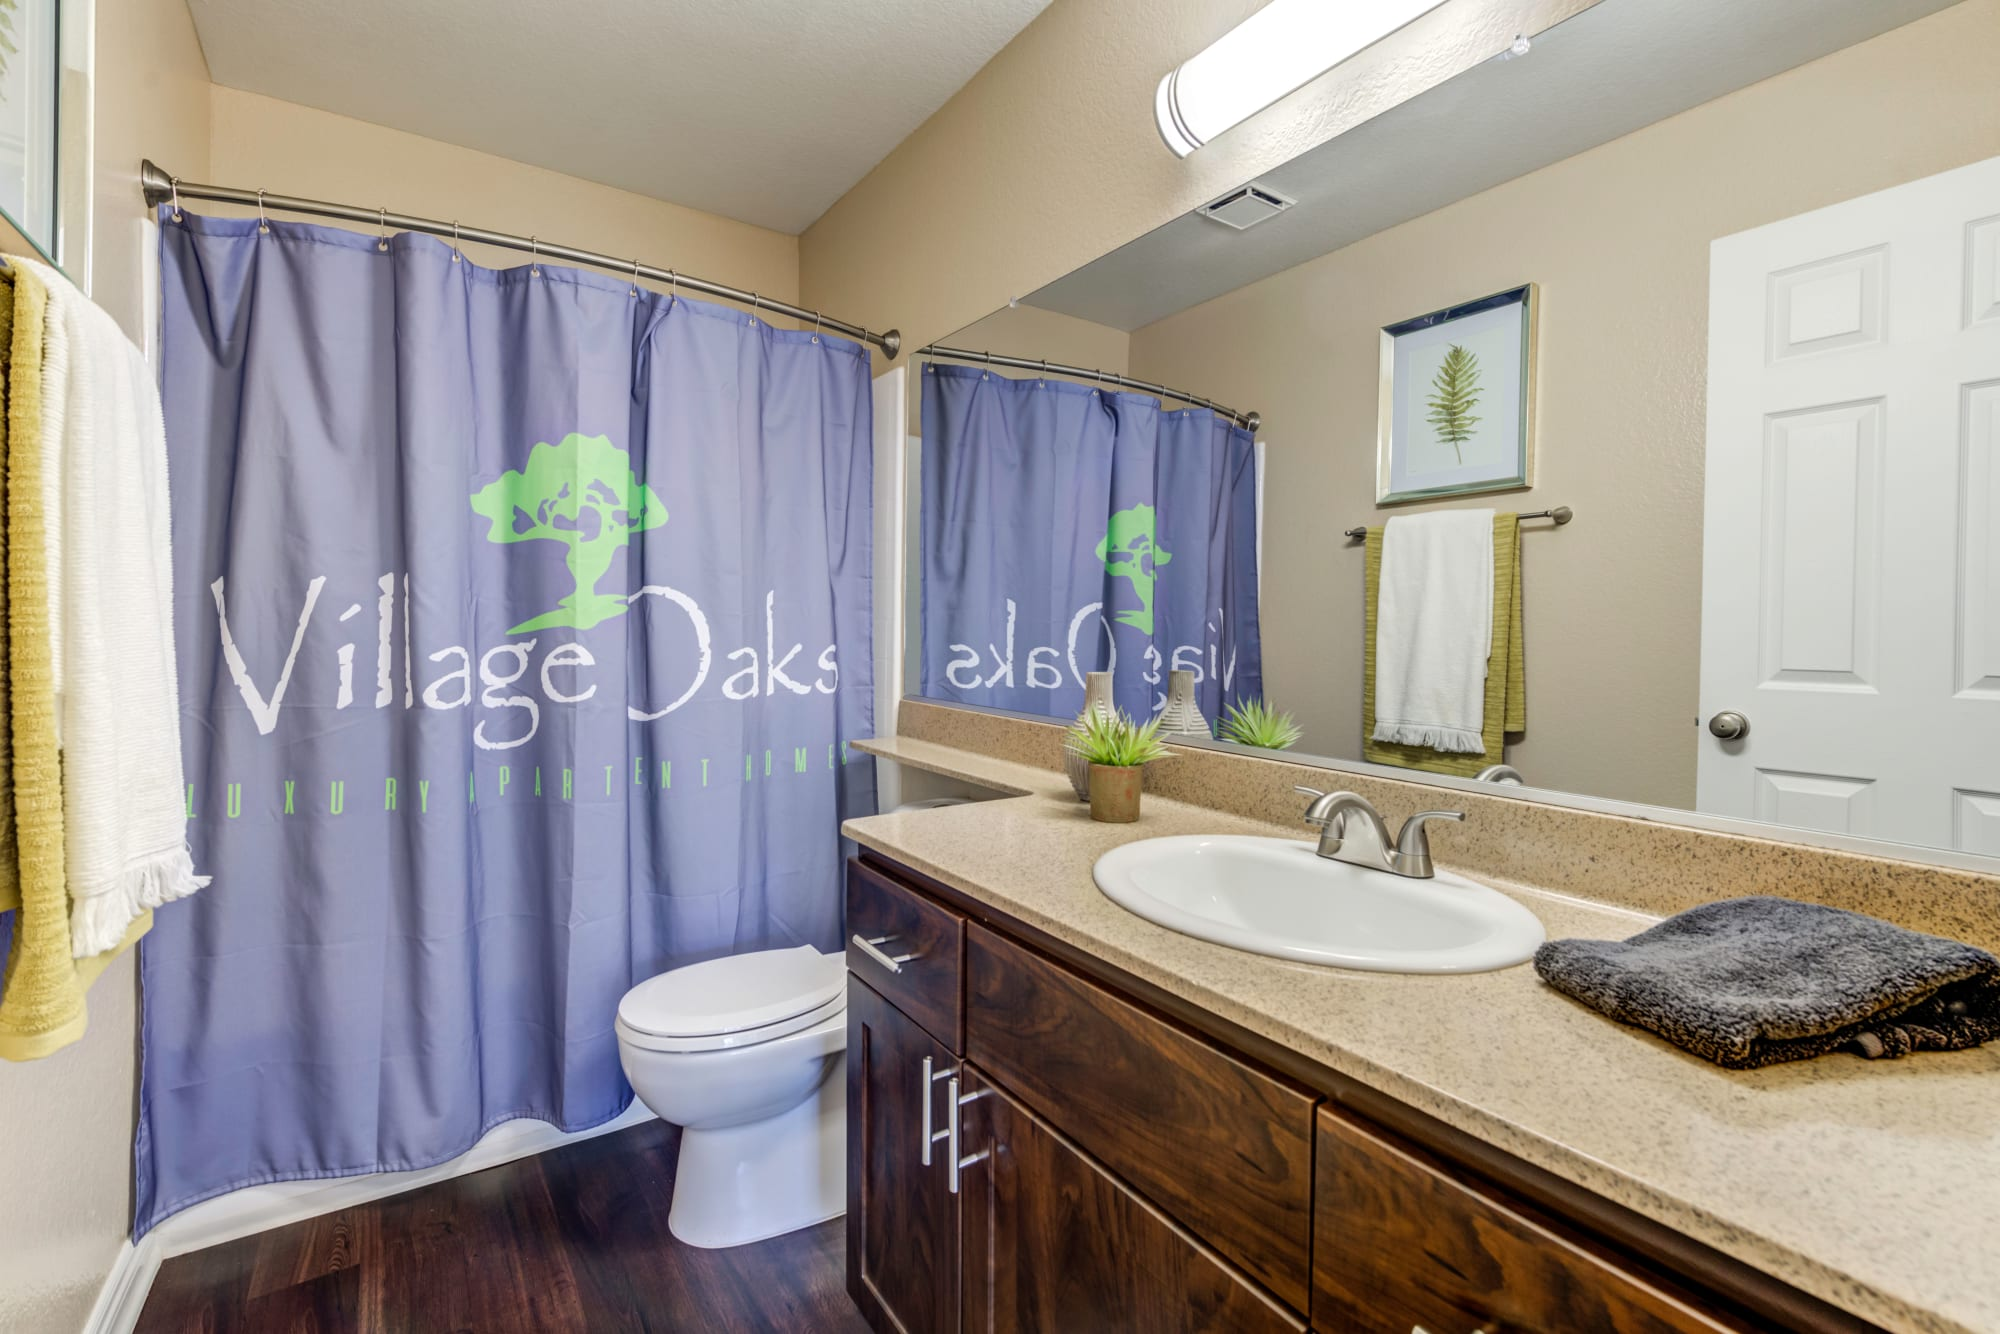 Spacious bathroom with a tub at Village Oaks in Chino Hills, California